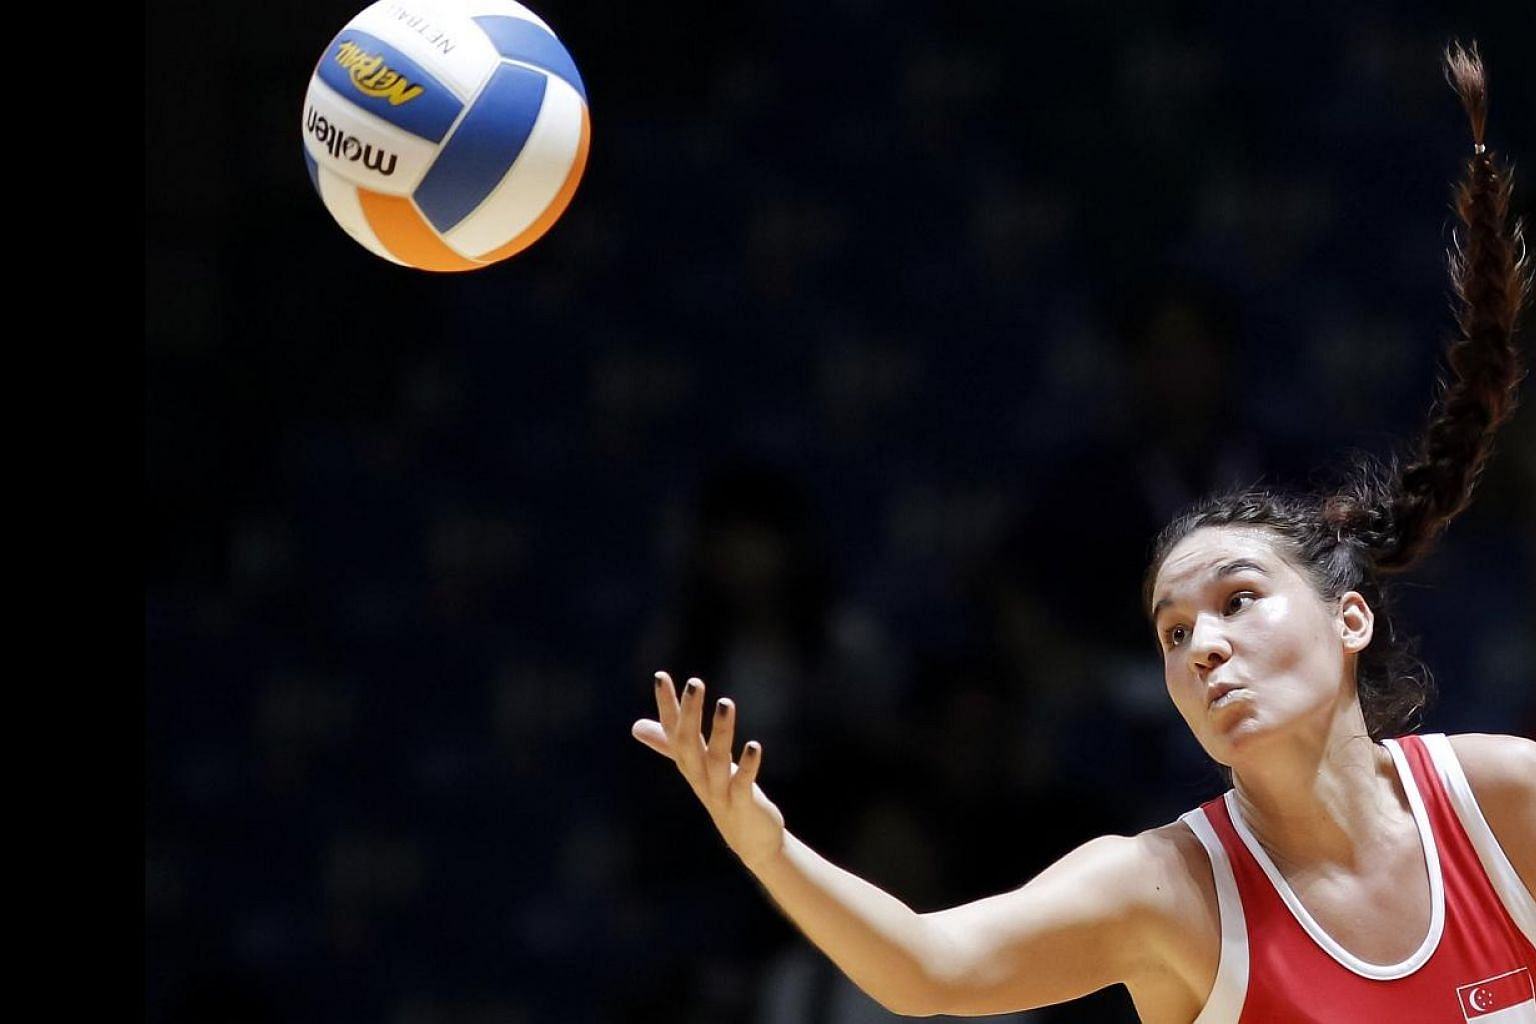 Shelby Koh in action asSingapore got off to a winning start in the SEA Games netball competition with a resounding 72-21 win over Brunei on Sunday. -- PHOTO: REUTERS